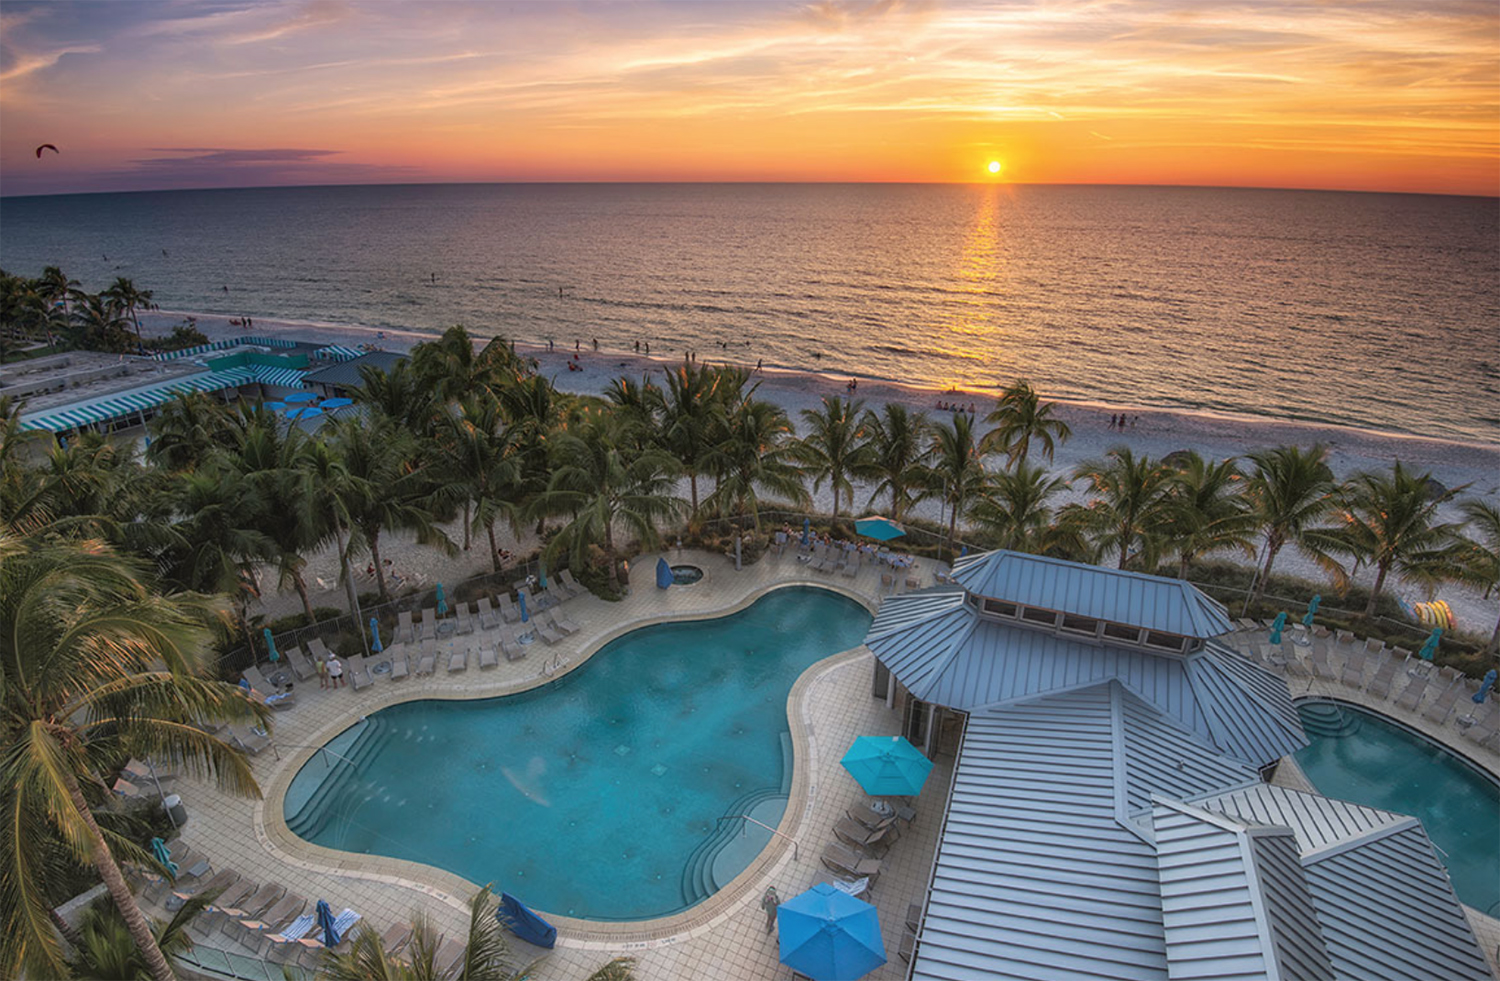 The Naples Beach Hotel & Golf Club is a stunning 319-room resort with a par-71 championship golf course.